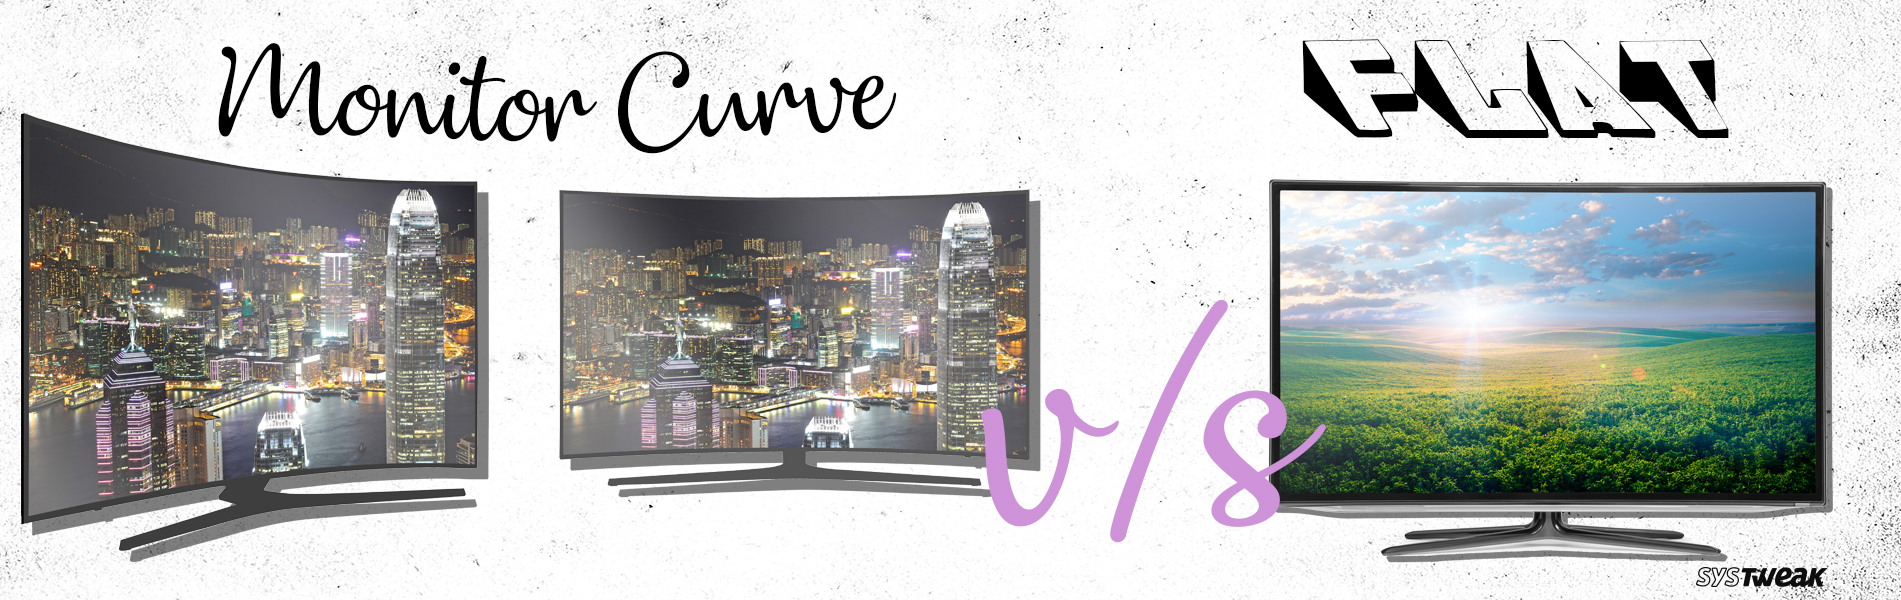 Curved Monitor Vs Flat Monitor